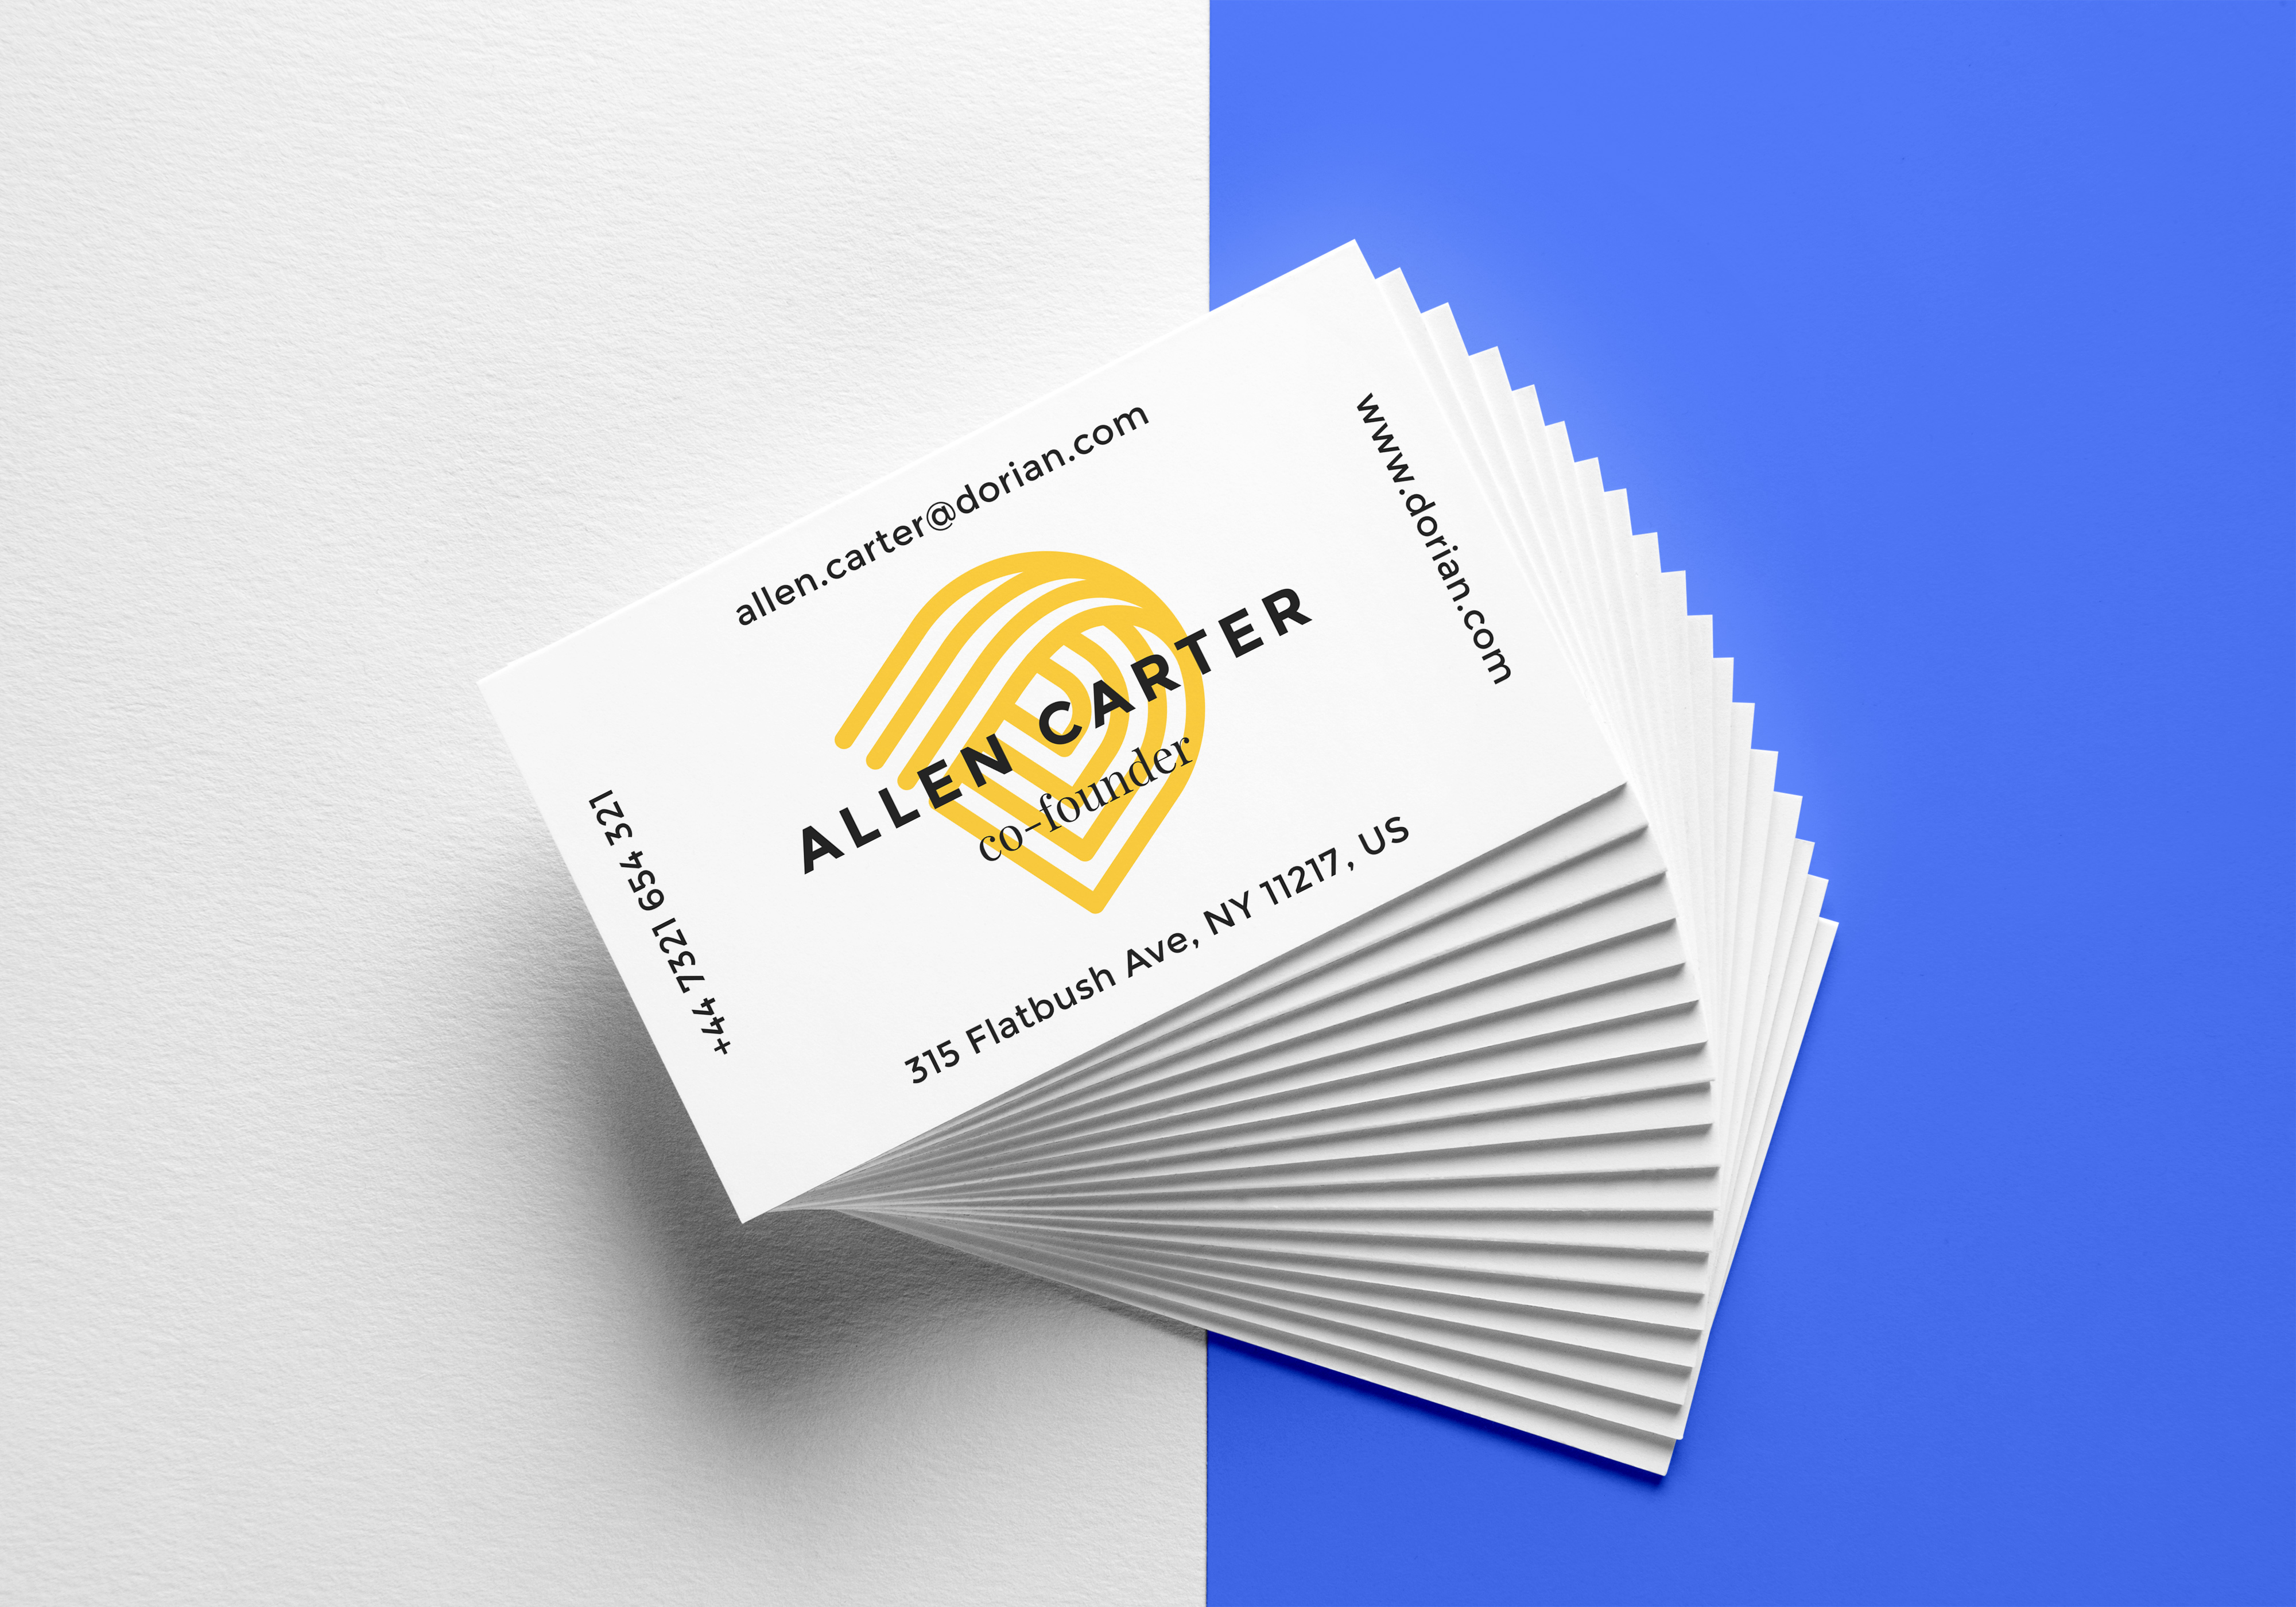 Realistic Business Cards MockUp #6 | GraphicBurger